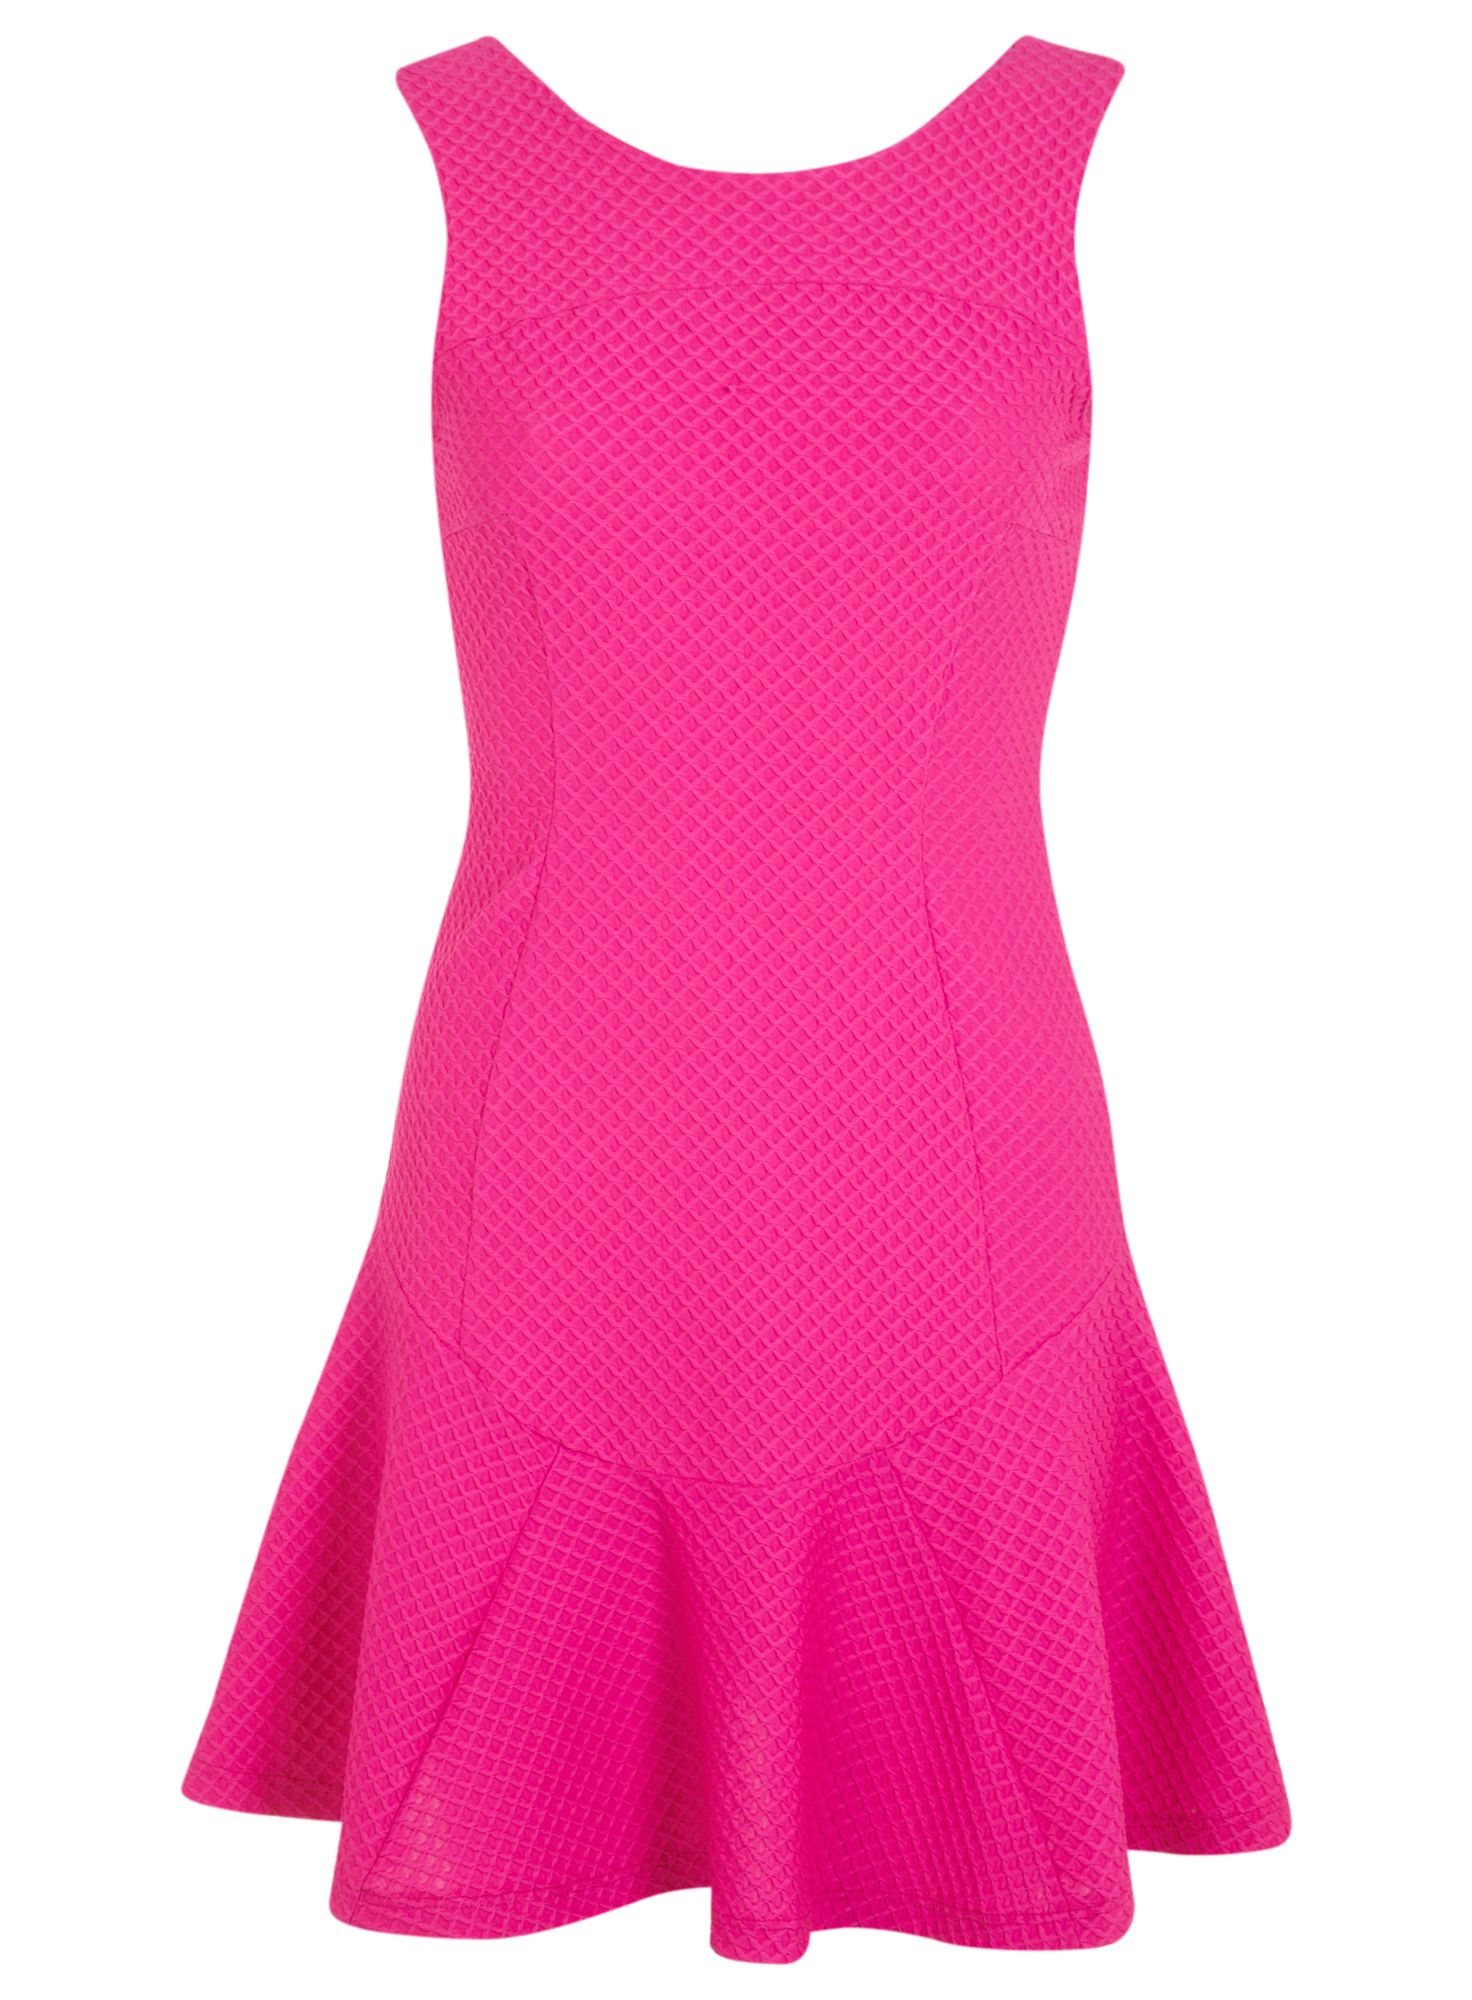 Lyst Miss Selfridge Pink Texture Trumpet Hem Dress In Pink